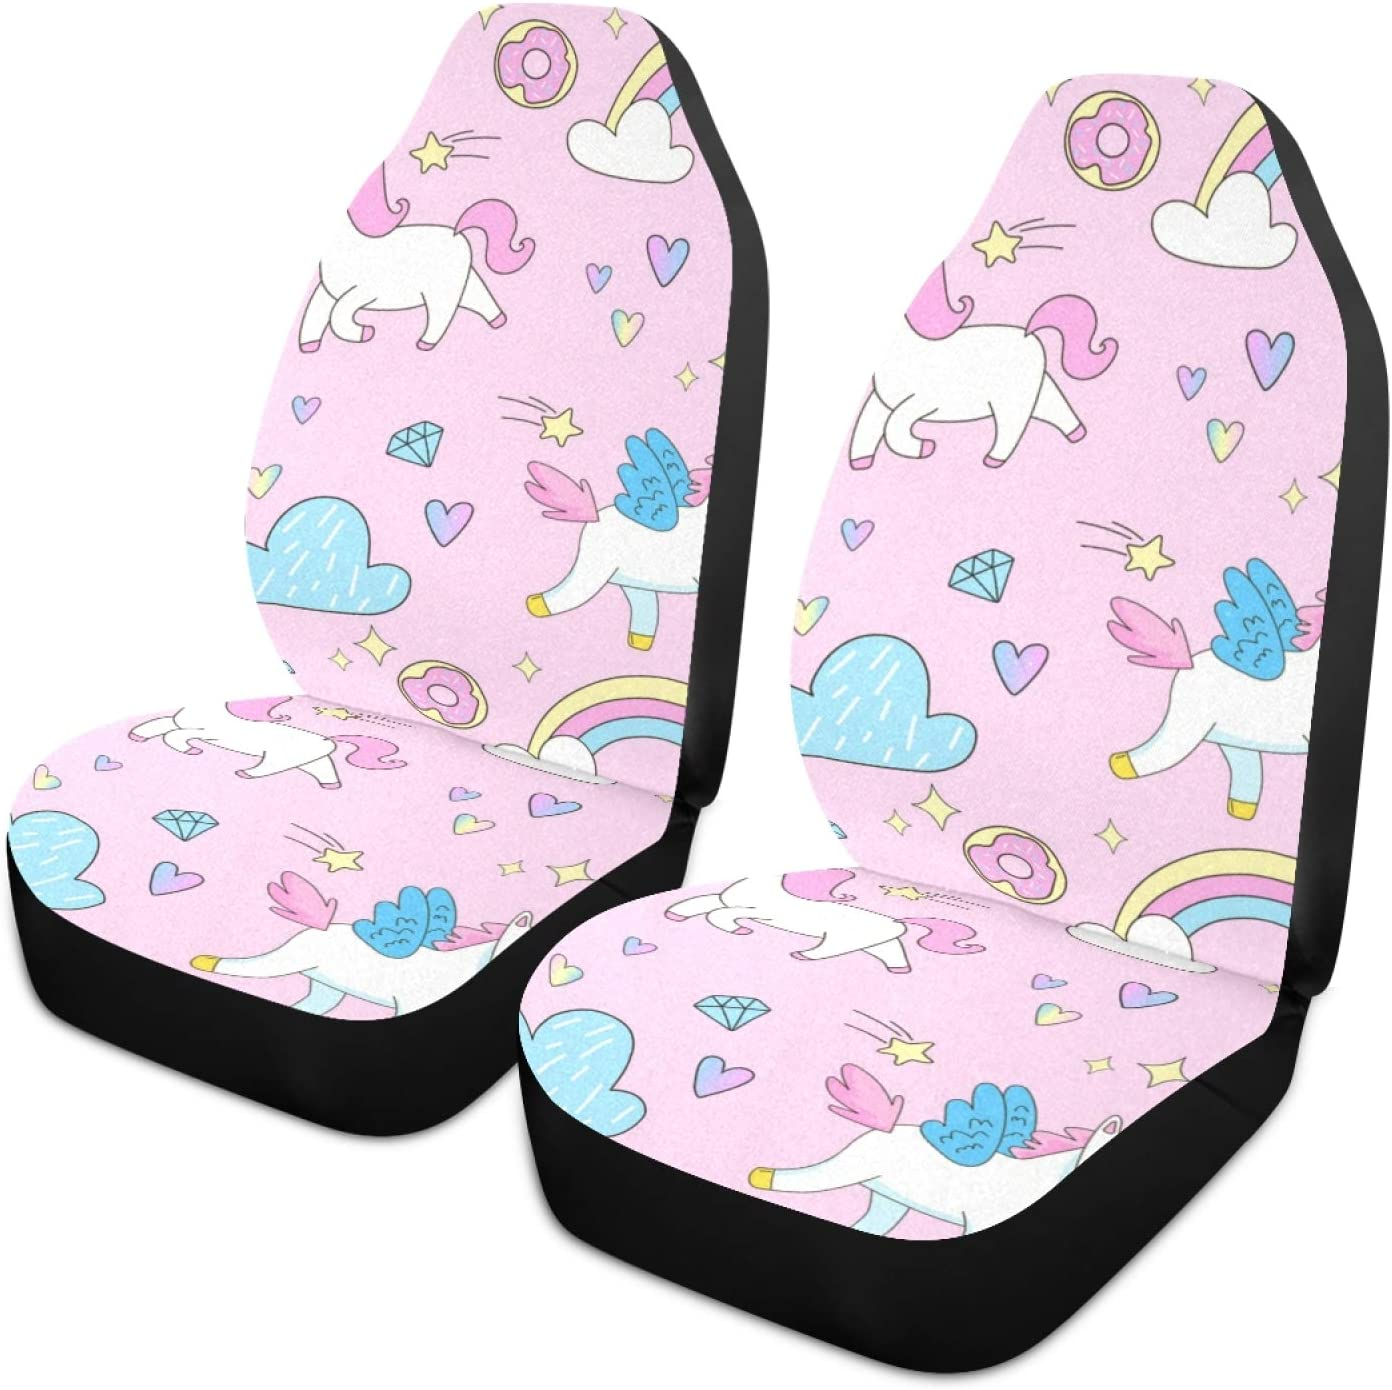 Moudou Unicorn Car Seat Cover Breathable Front Car Seat Cover Vehicle Seat Protector Fit Most Cars, SUV, Truck and Van, 1pc